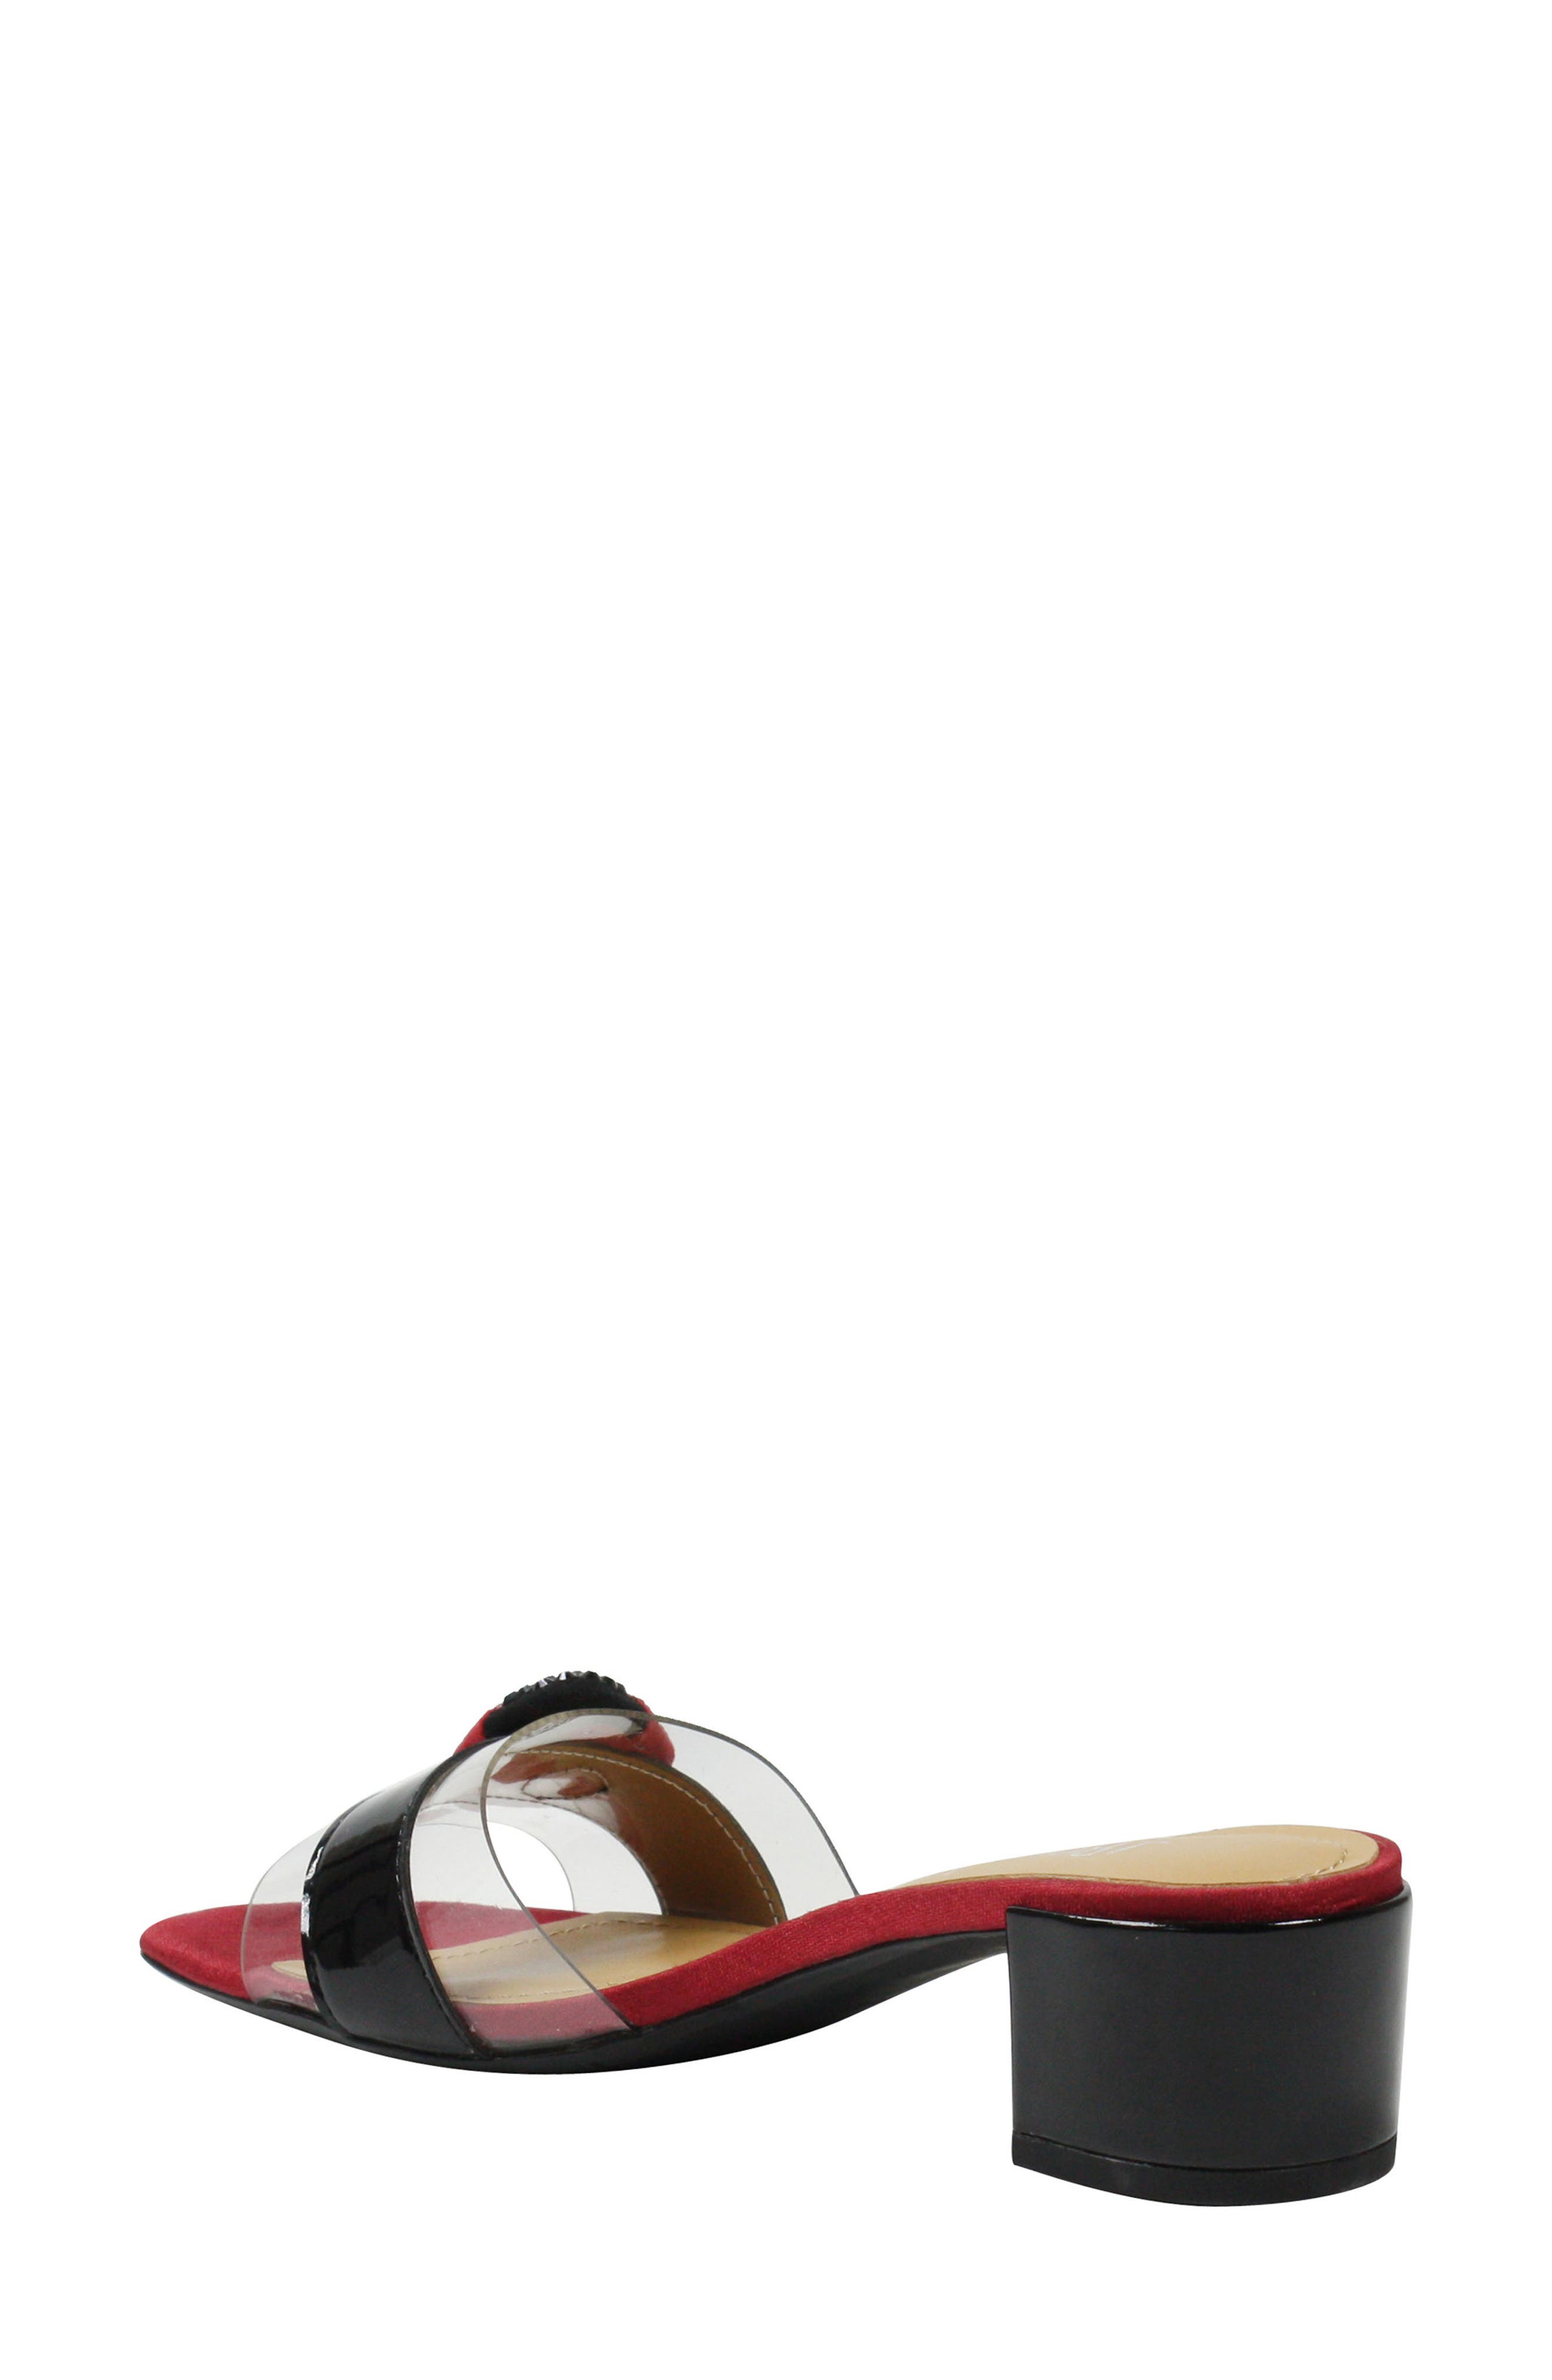 Etania Slide Sandal,                             Alternate thumbnail 2, color,                             BLACK/ RED/ CLEAR